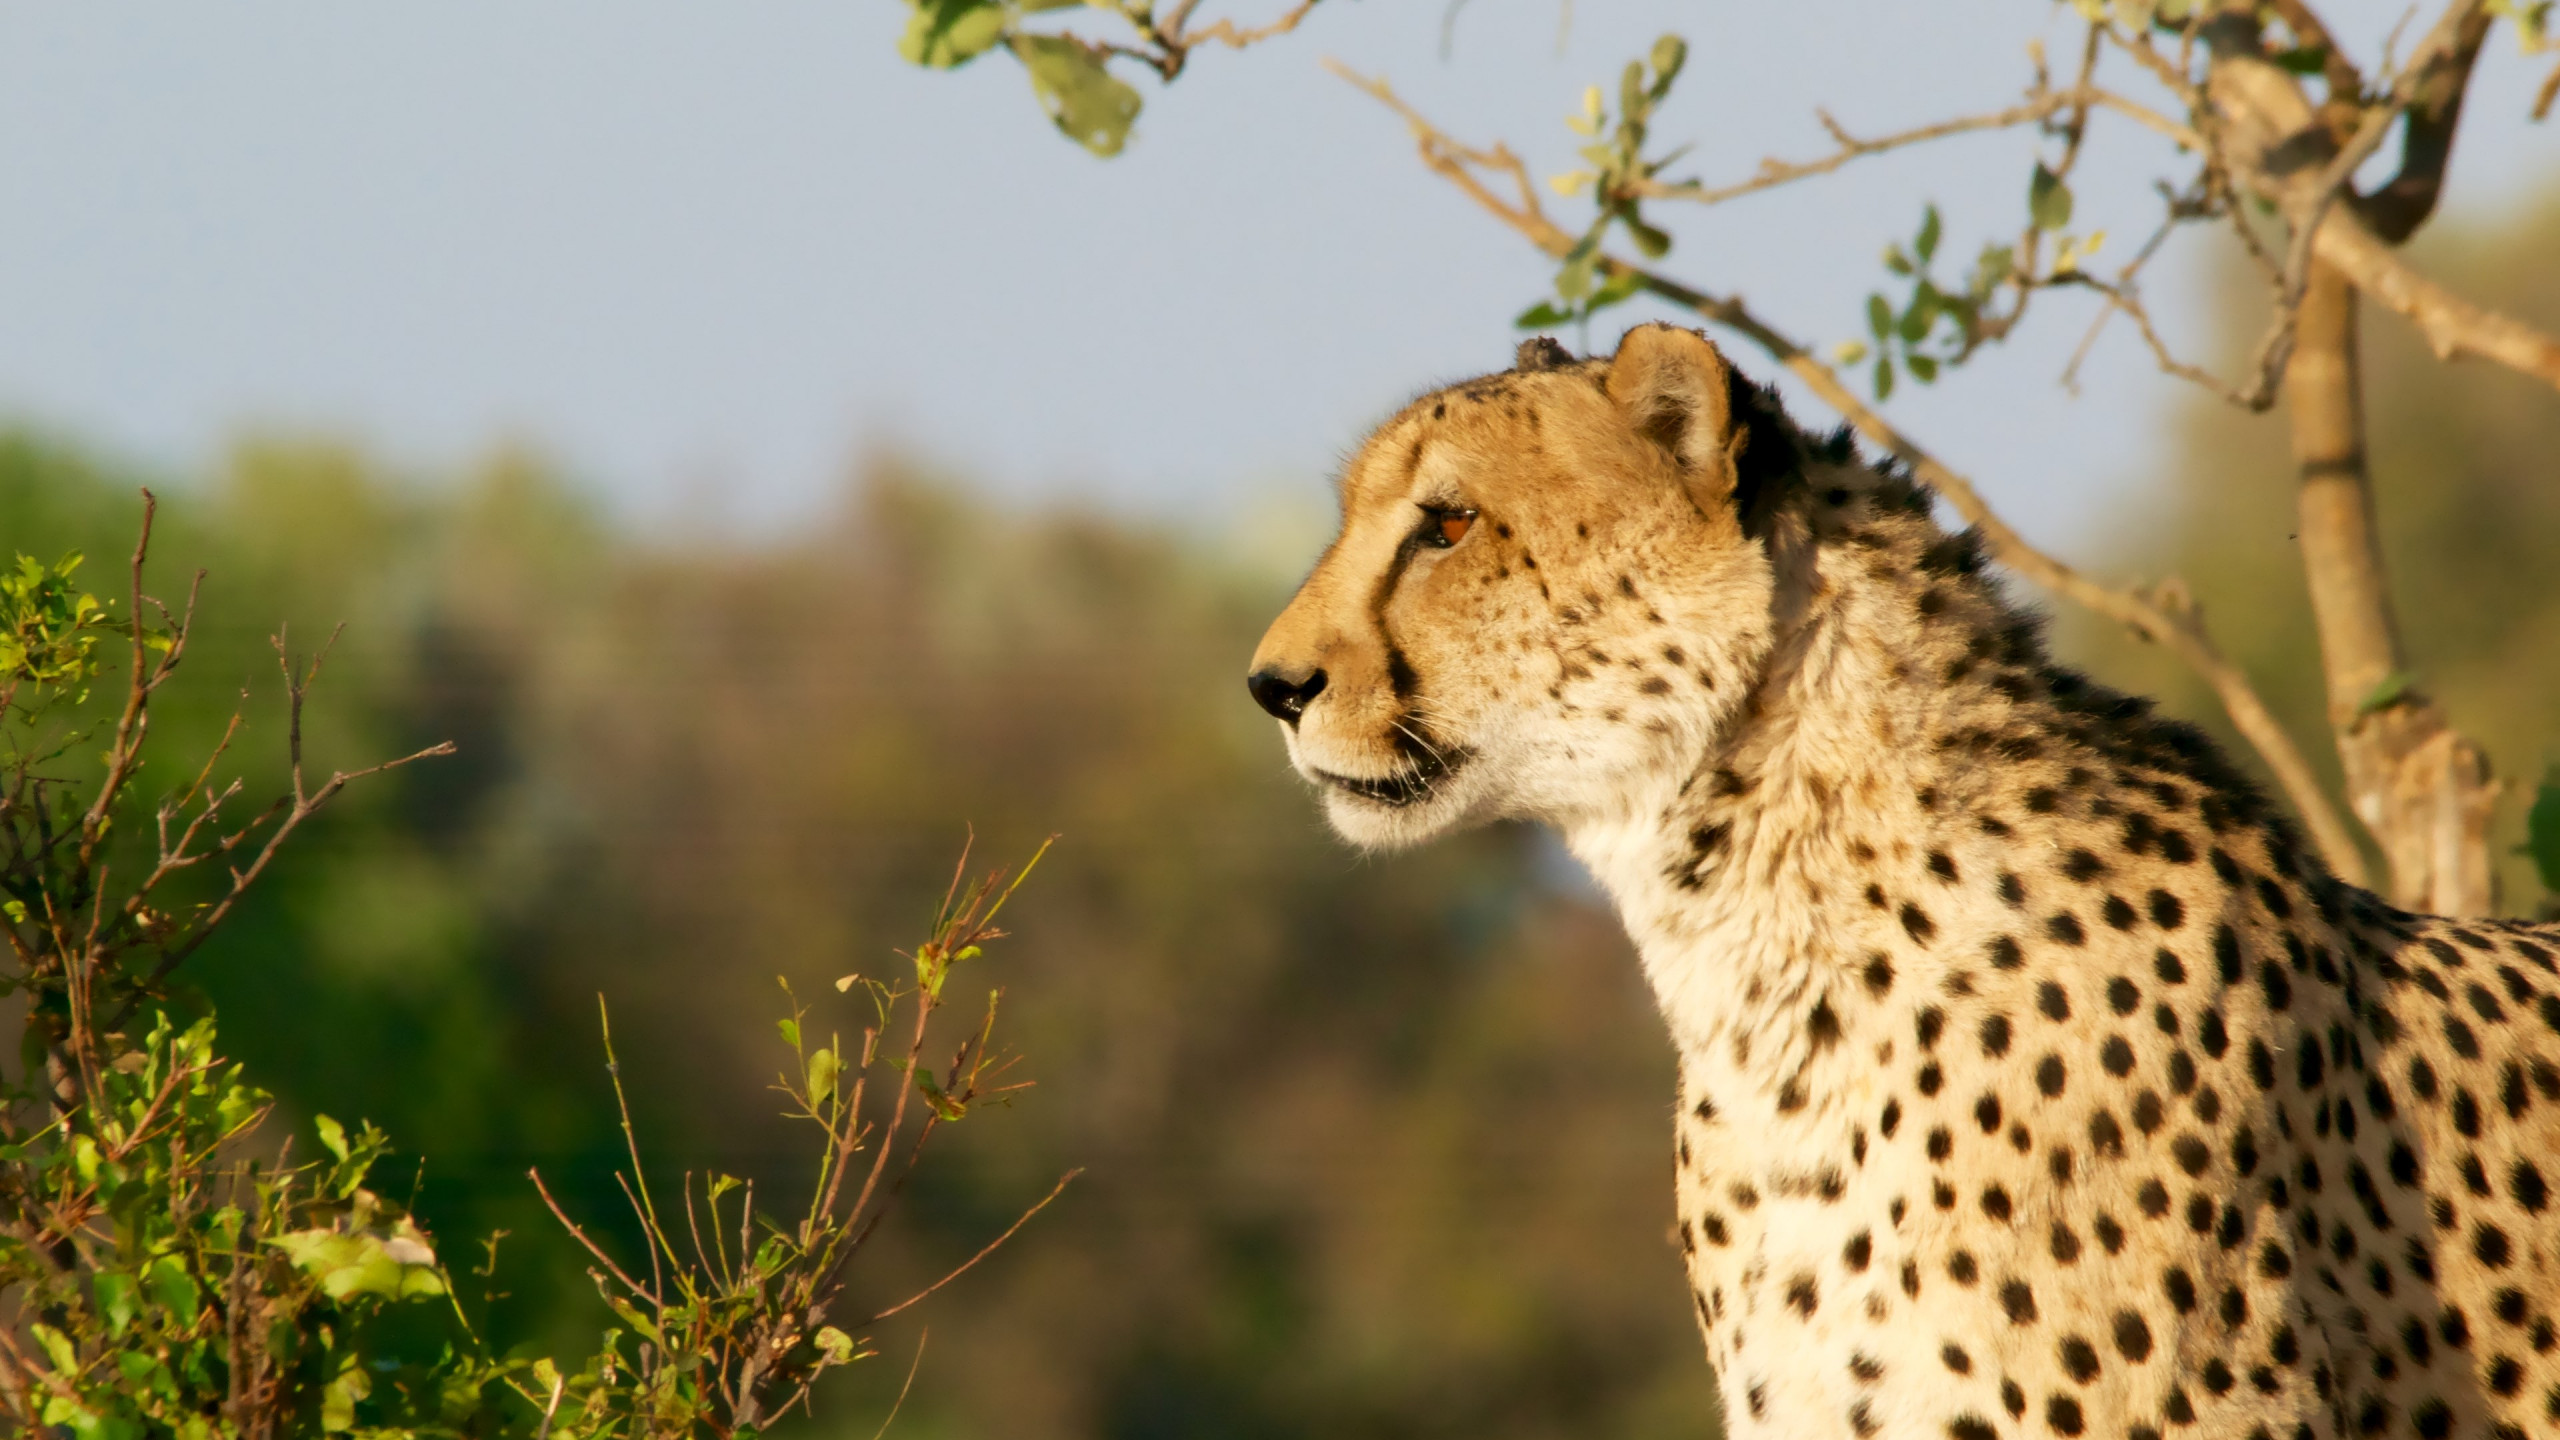 Cheetah in Ngamiland East, Botswana | 2560x1440 wallpaper